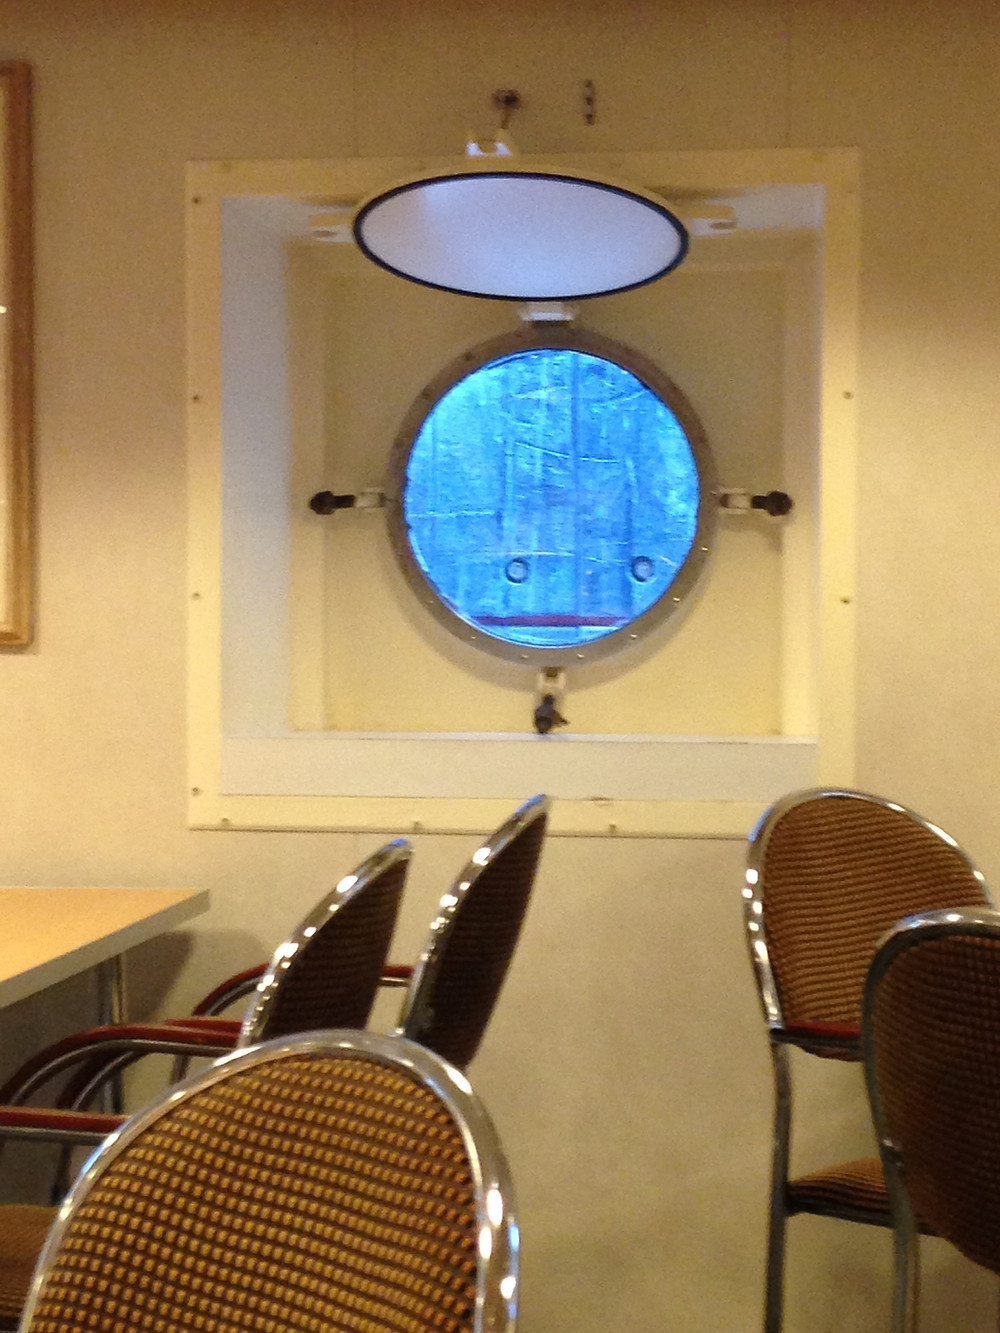 The creeper peeping in the officers' mess.